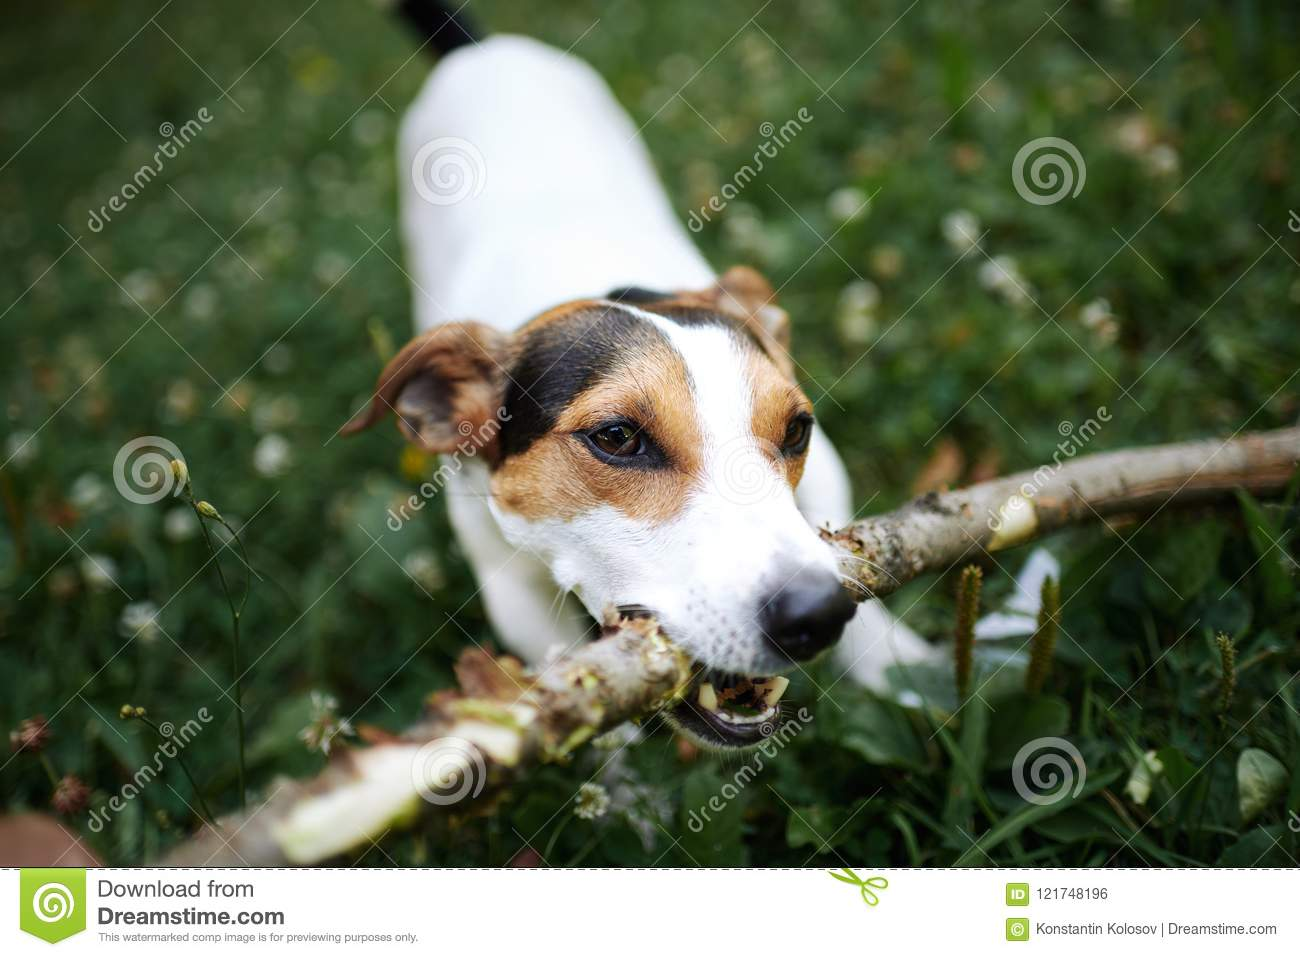 Jack russell fight over stick